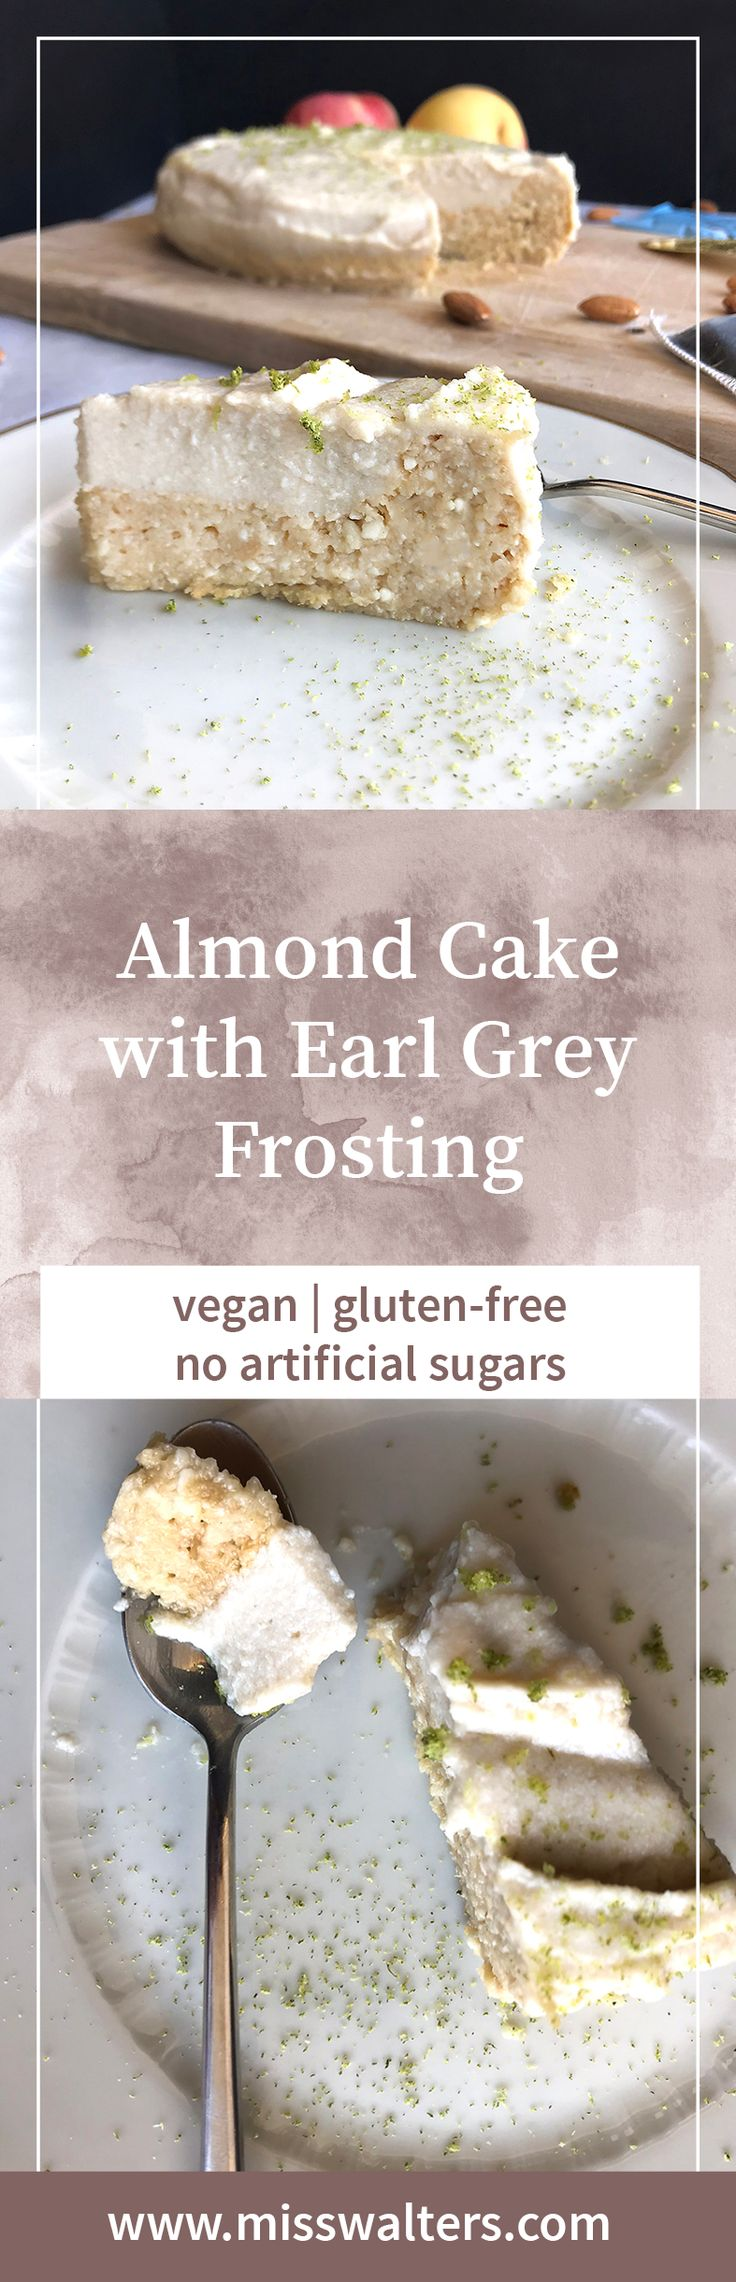 This almond cake sports a lovely citrus note and is topped with a vegan Earl Grey cream frosting.